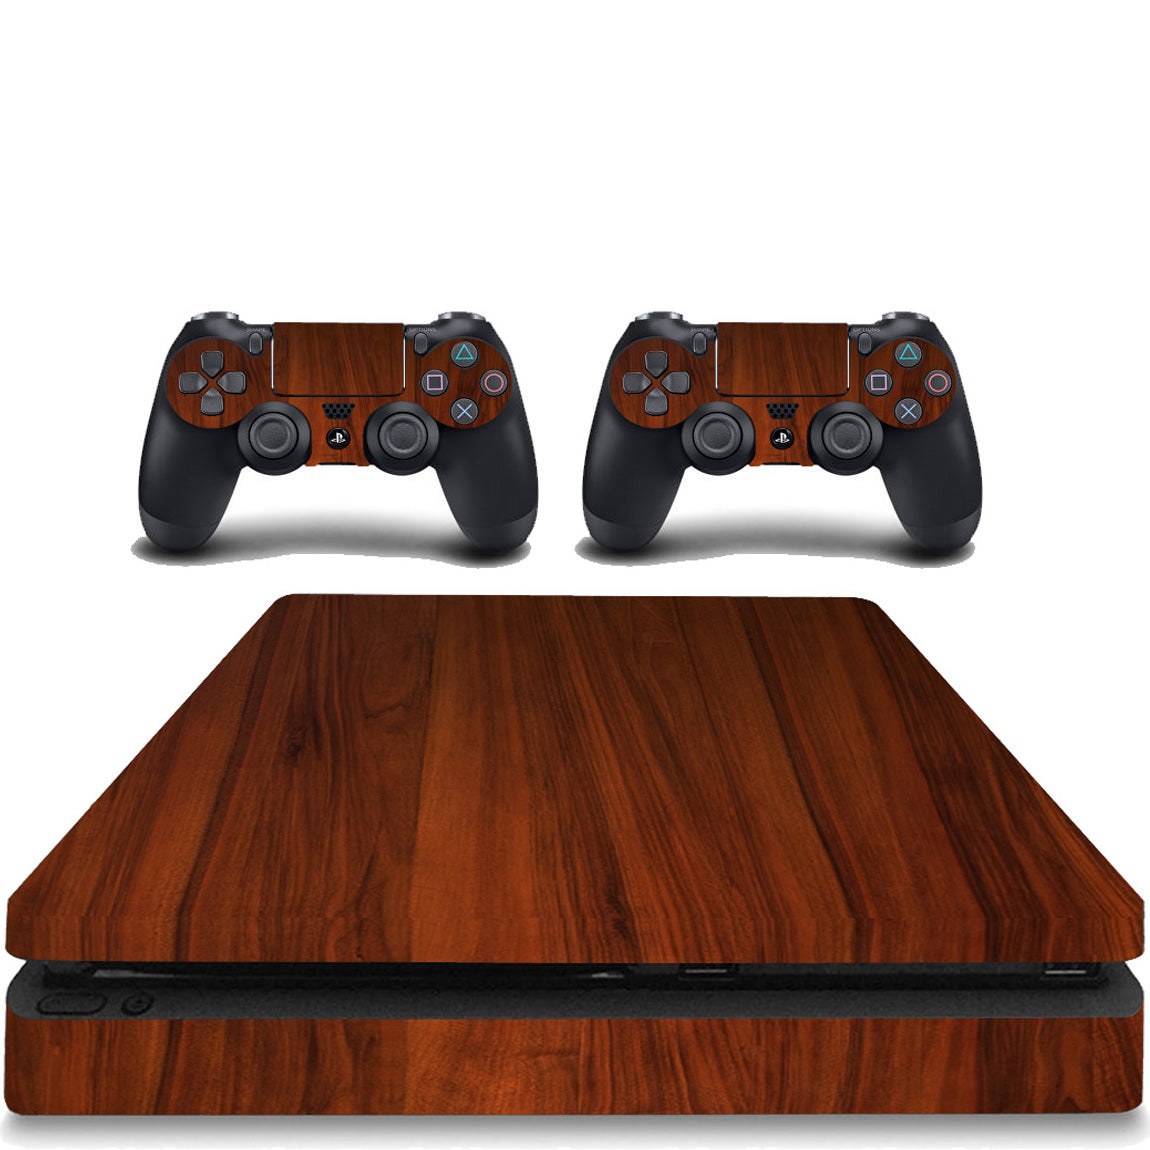 VWAQ PS4 Slim Decal Wood Skin Playstation 4 Slim Sticker Woodgrain Cover - PSGC4 - VWAQ Vinyl Wall Art Quotes and Prints